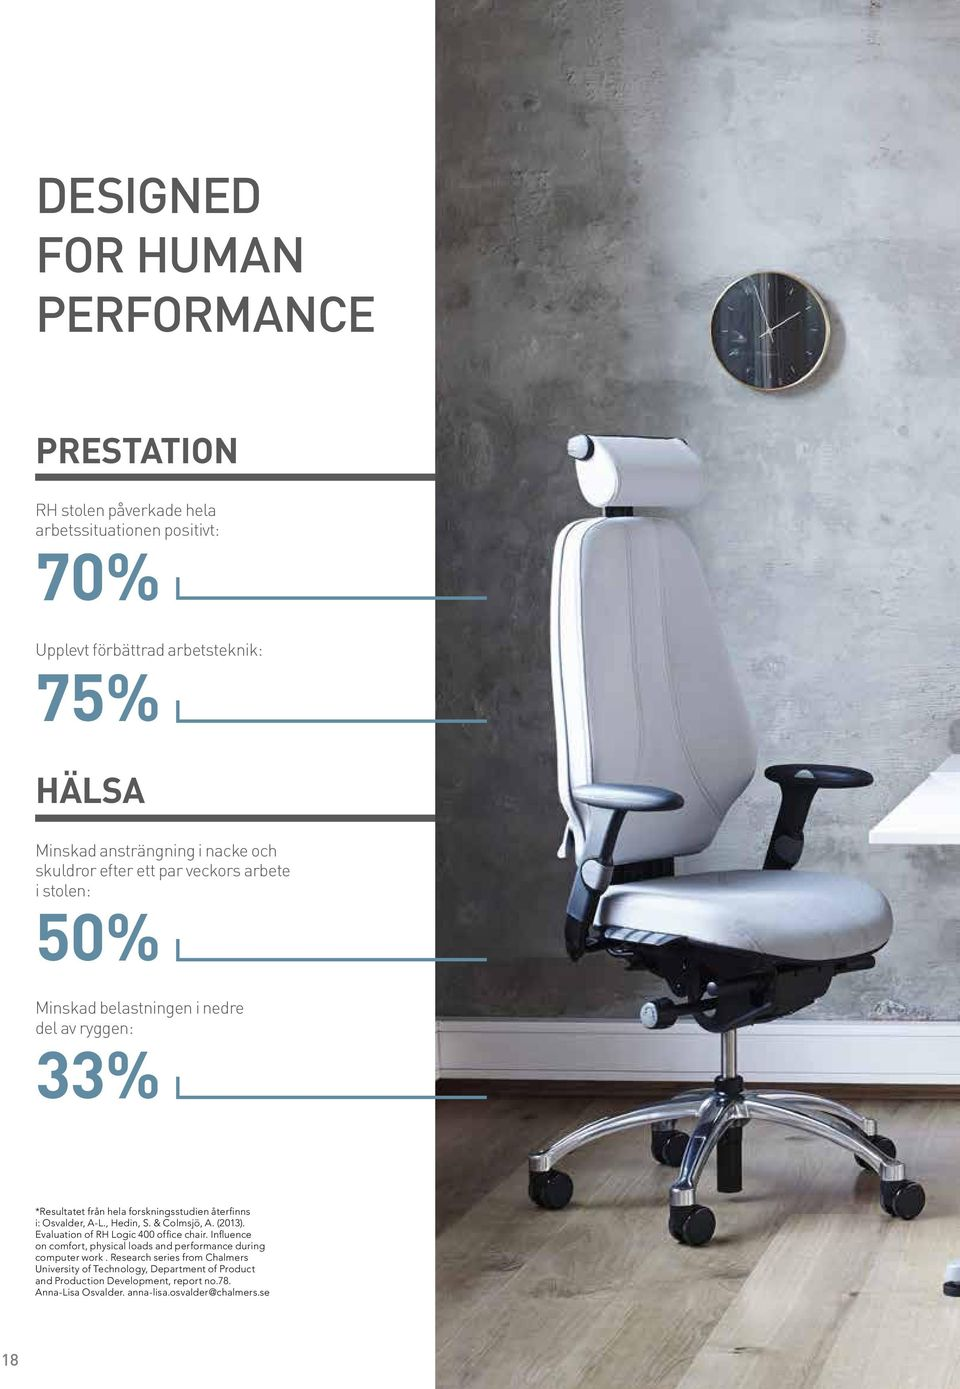 Osvalder, A-L., Hedin, S. & Colmsjö, A. (2013). Evaluation of RH Logic 400 office chair. Influence on comfort, physical loads and performance during computer work.